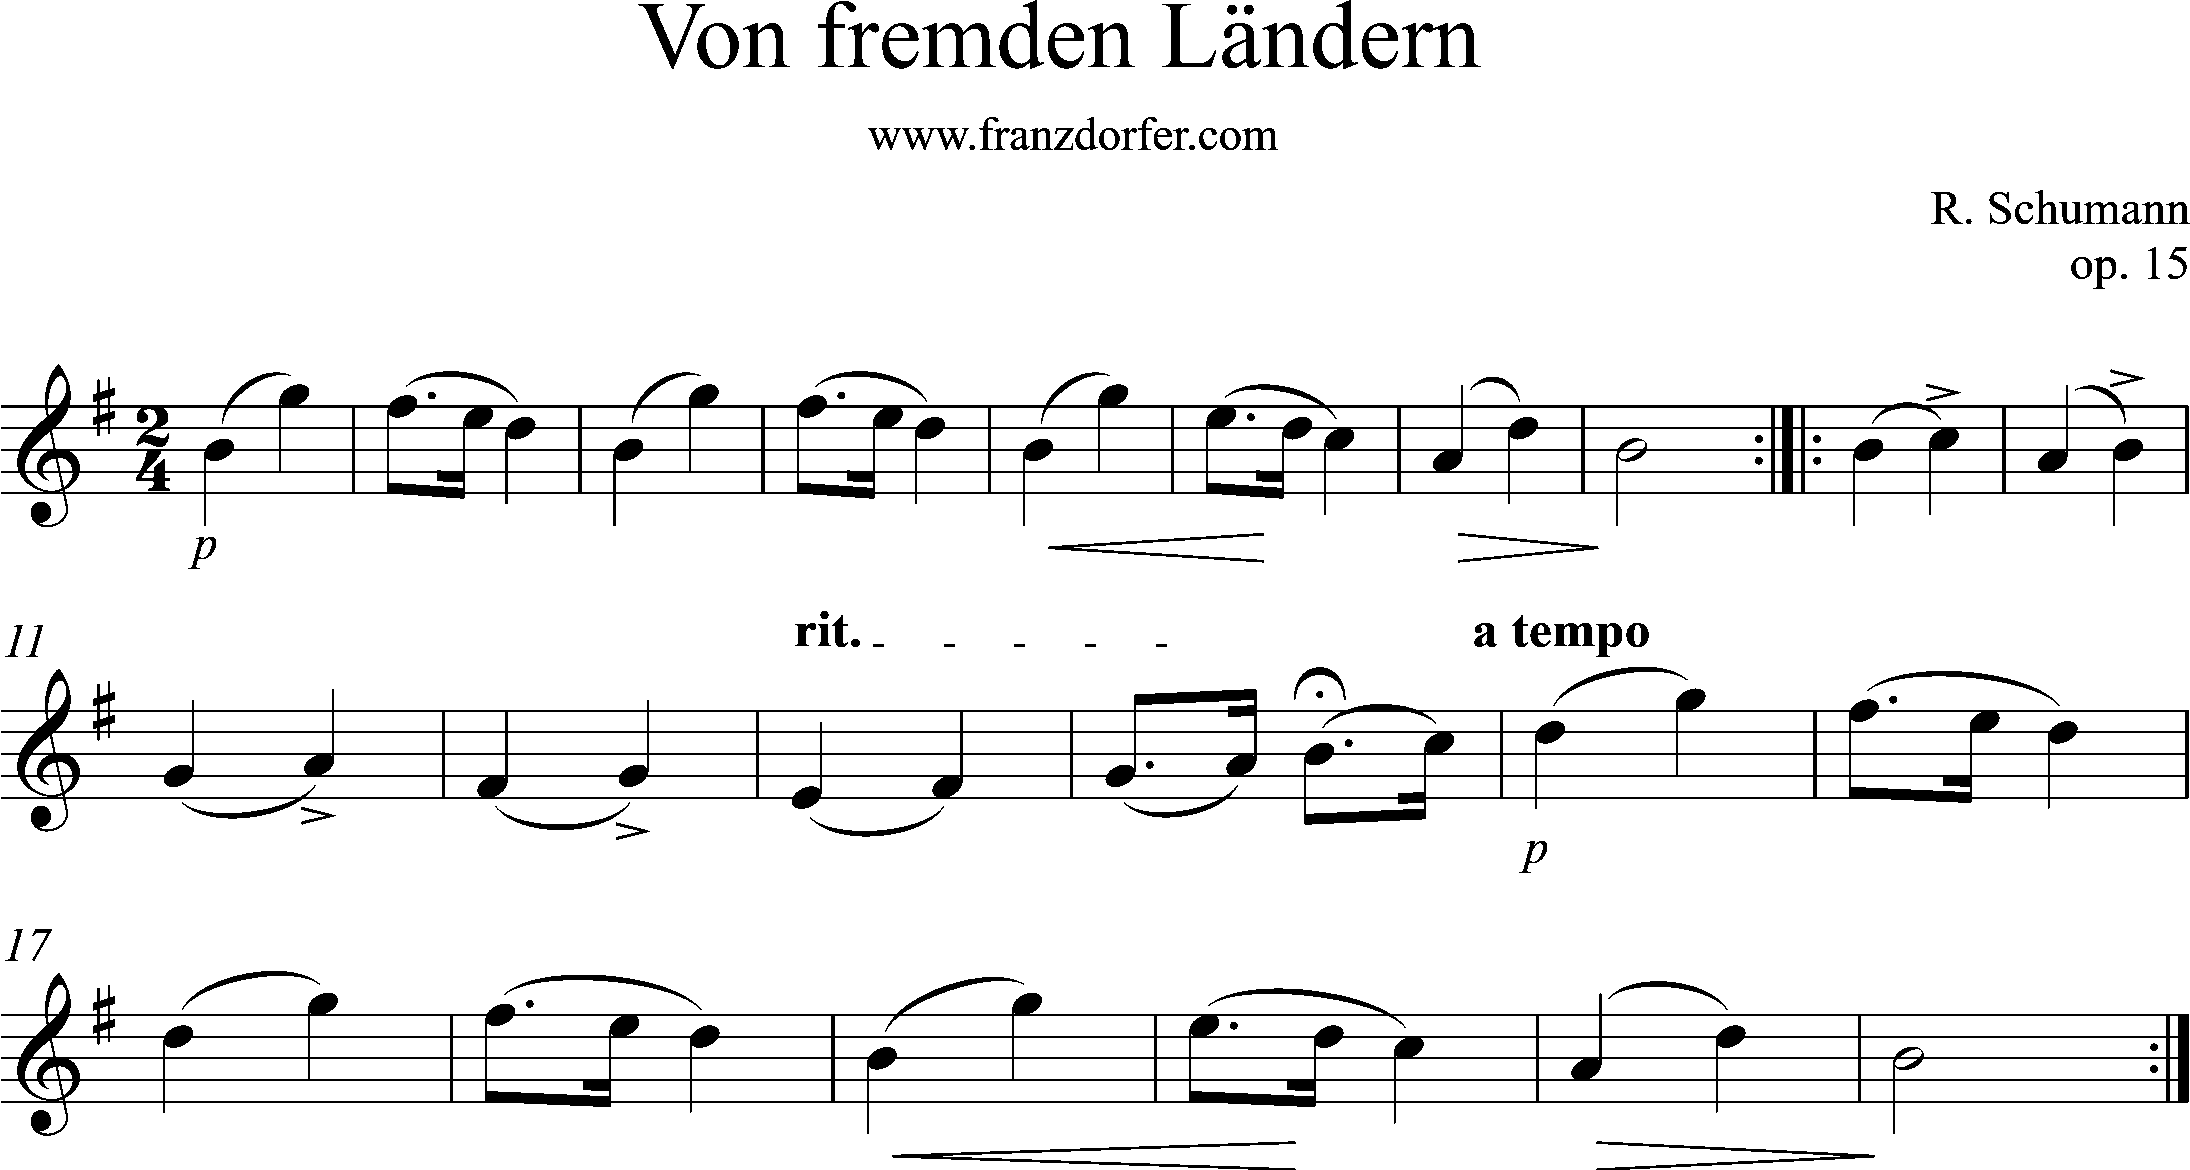 Sheetmusic for Flute, Violin, G-Major, Von fremden Ländern